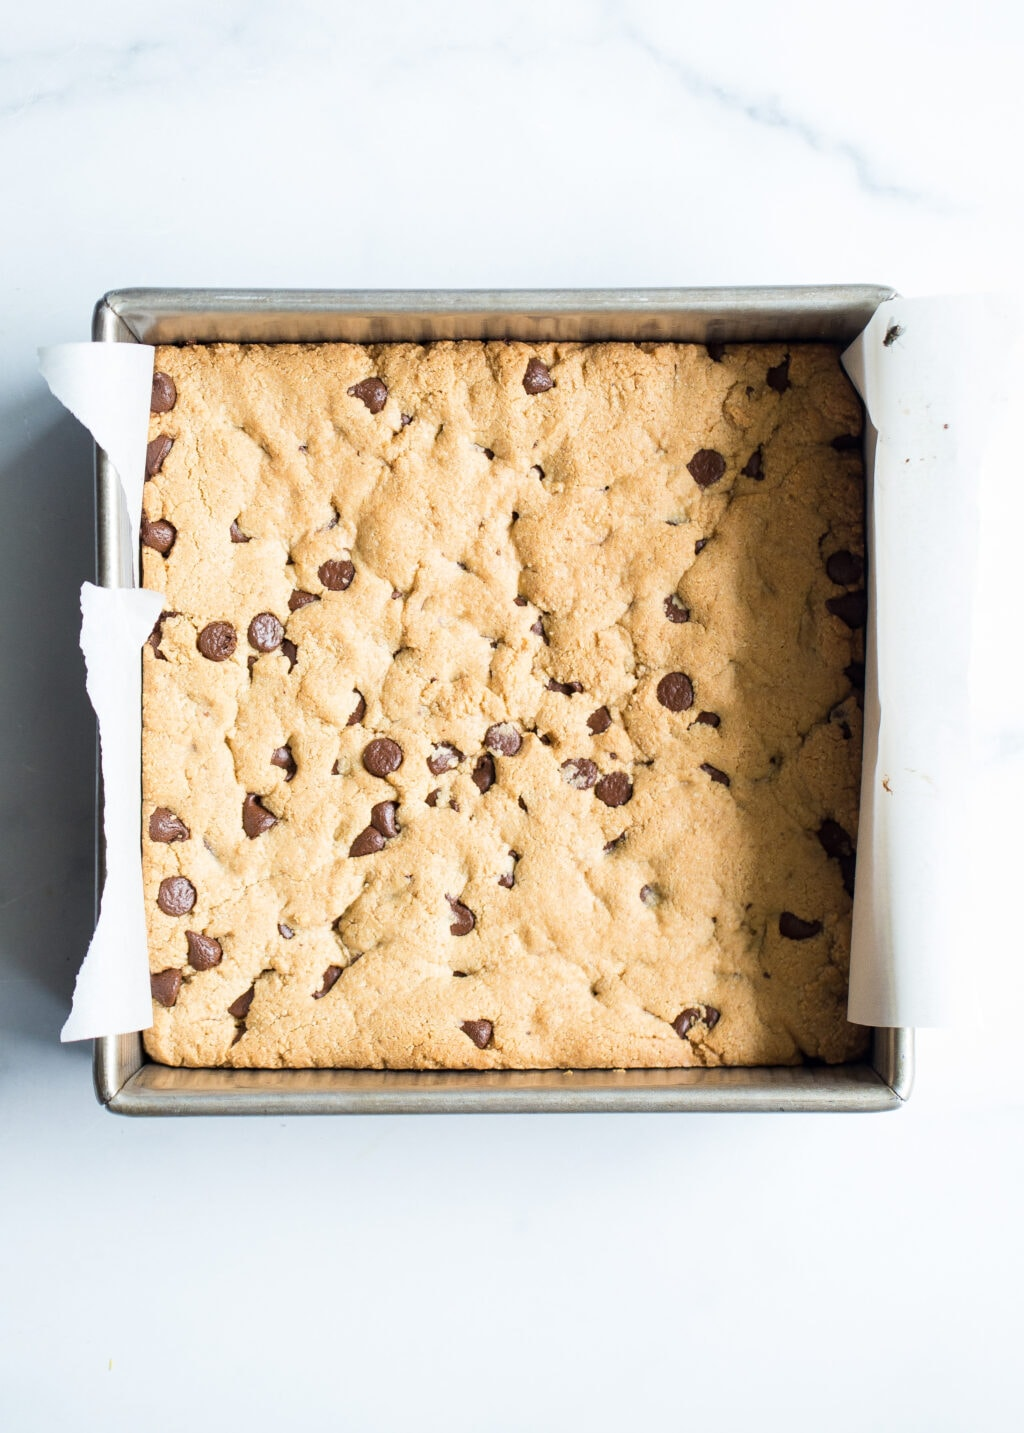 Chocolate chip cookie dough baked in an 8x8 inch pan with parchment paper.